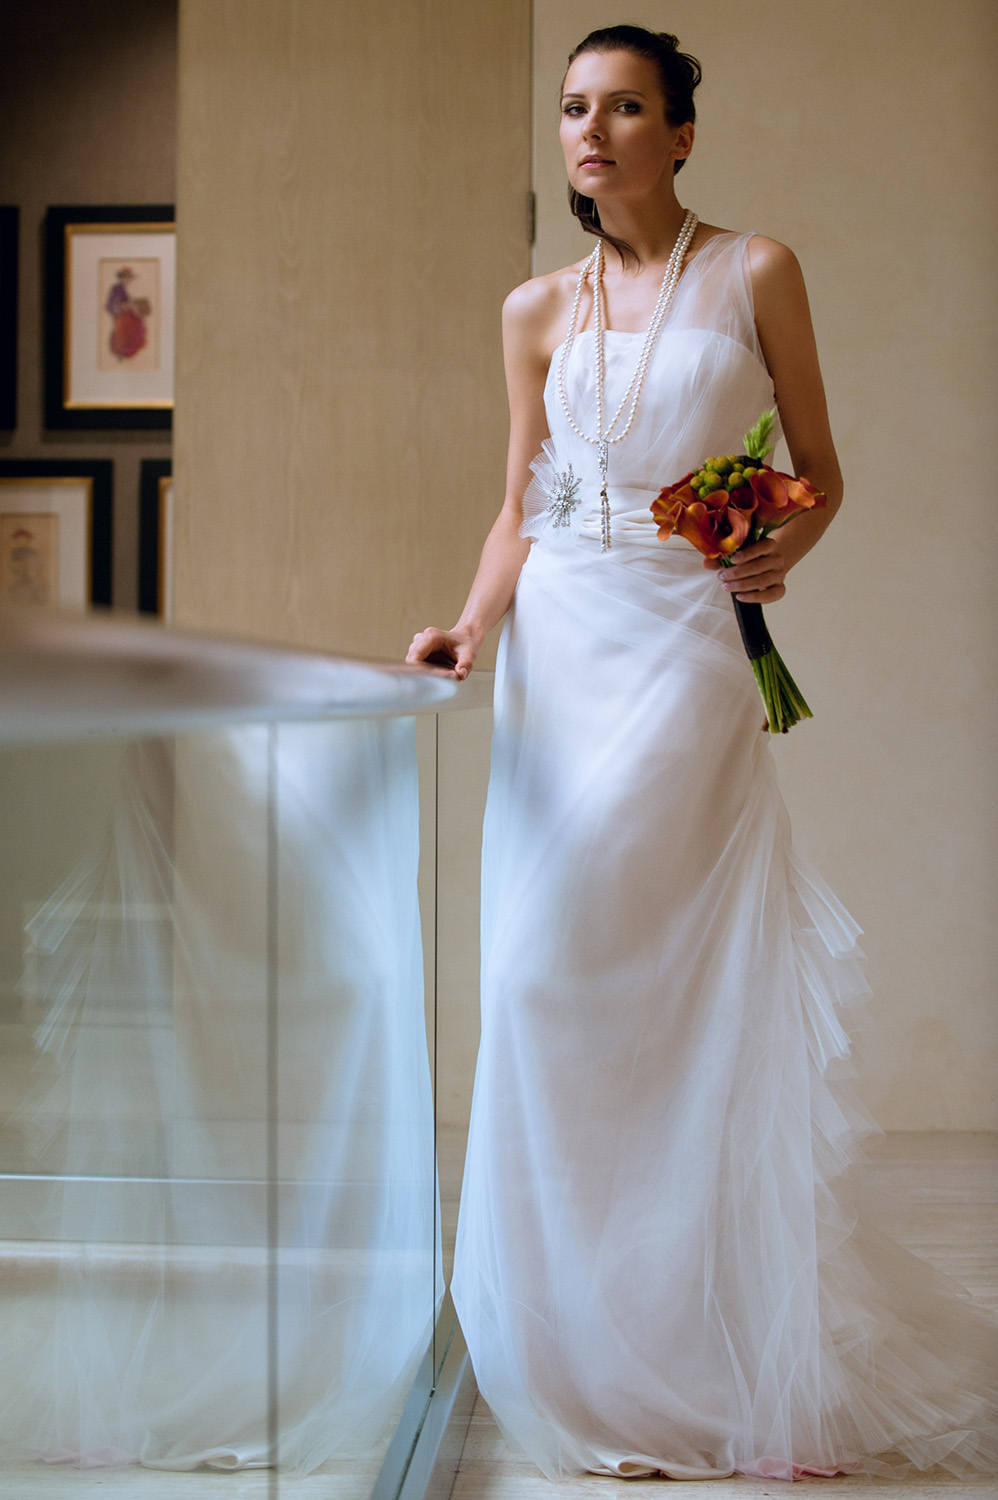 Bridal Fashion Photograhy 027.jpg